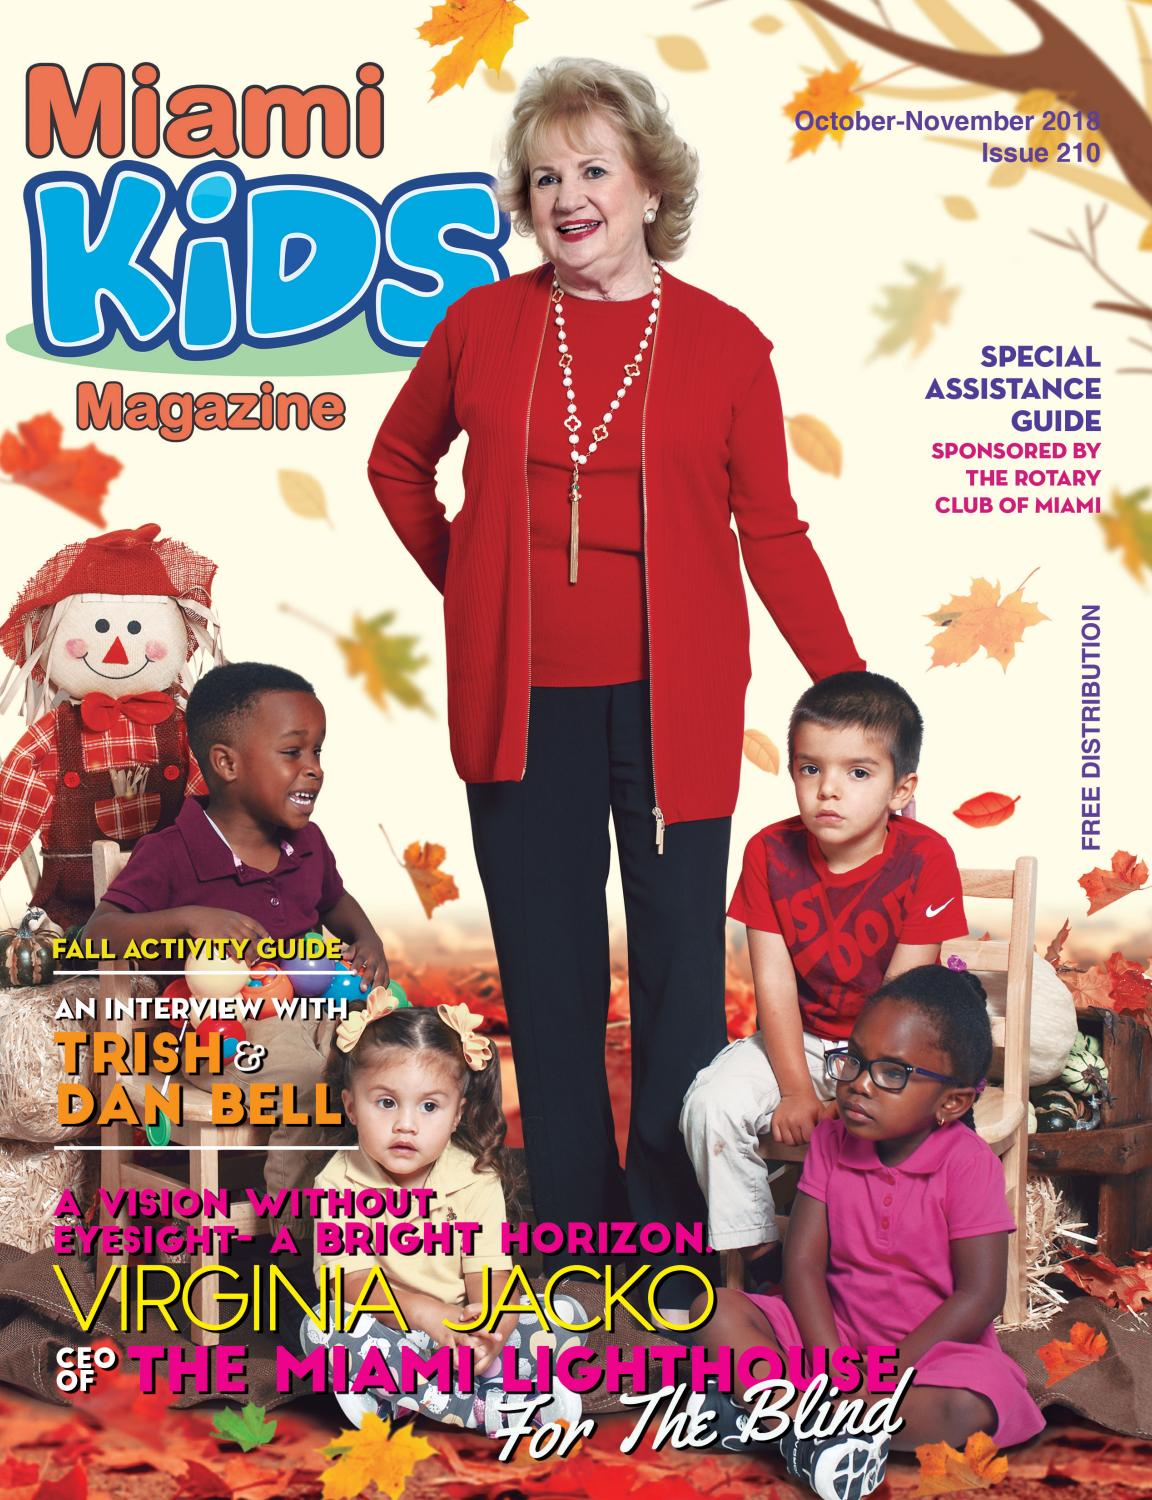 Miami Lighthouse Learning Center for Children™ featured on cover of Miami Kids Magazine